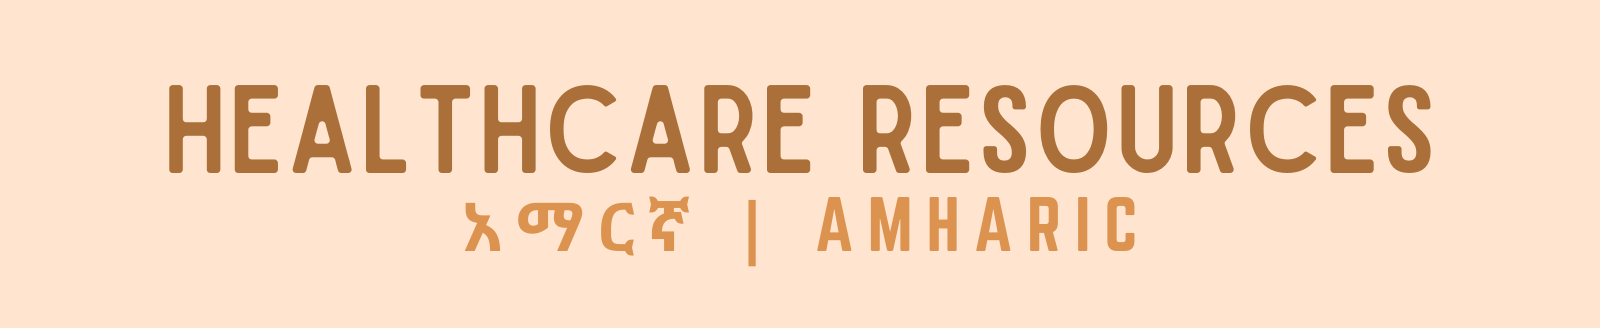 Healthcare Resources in Amharic